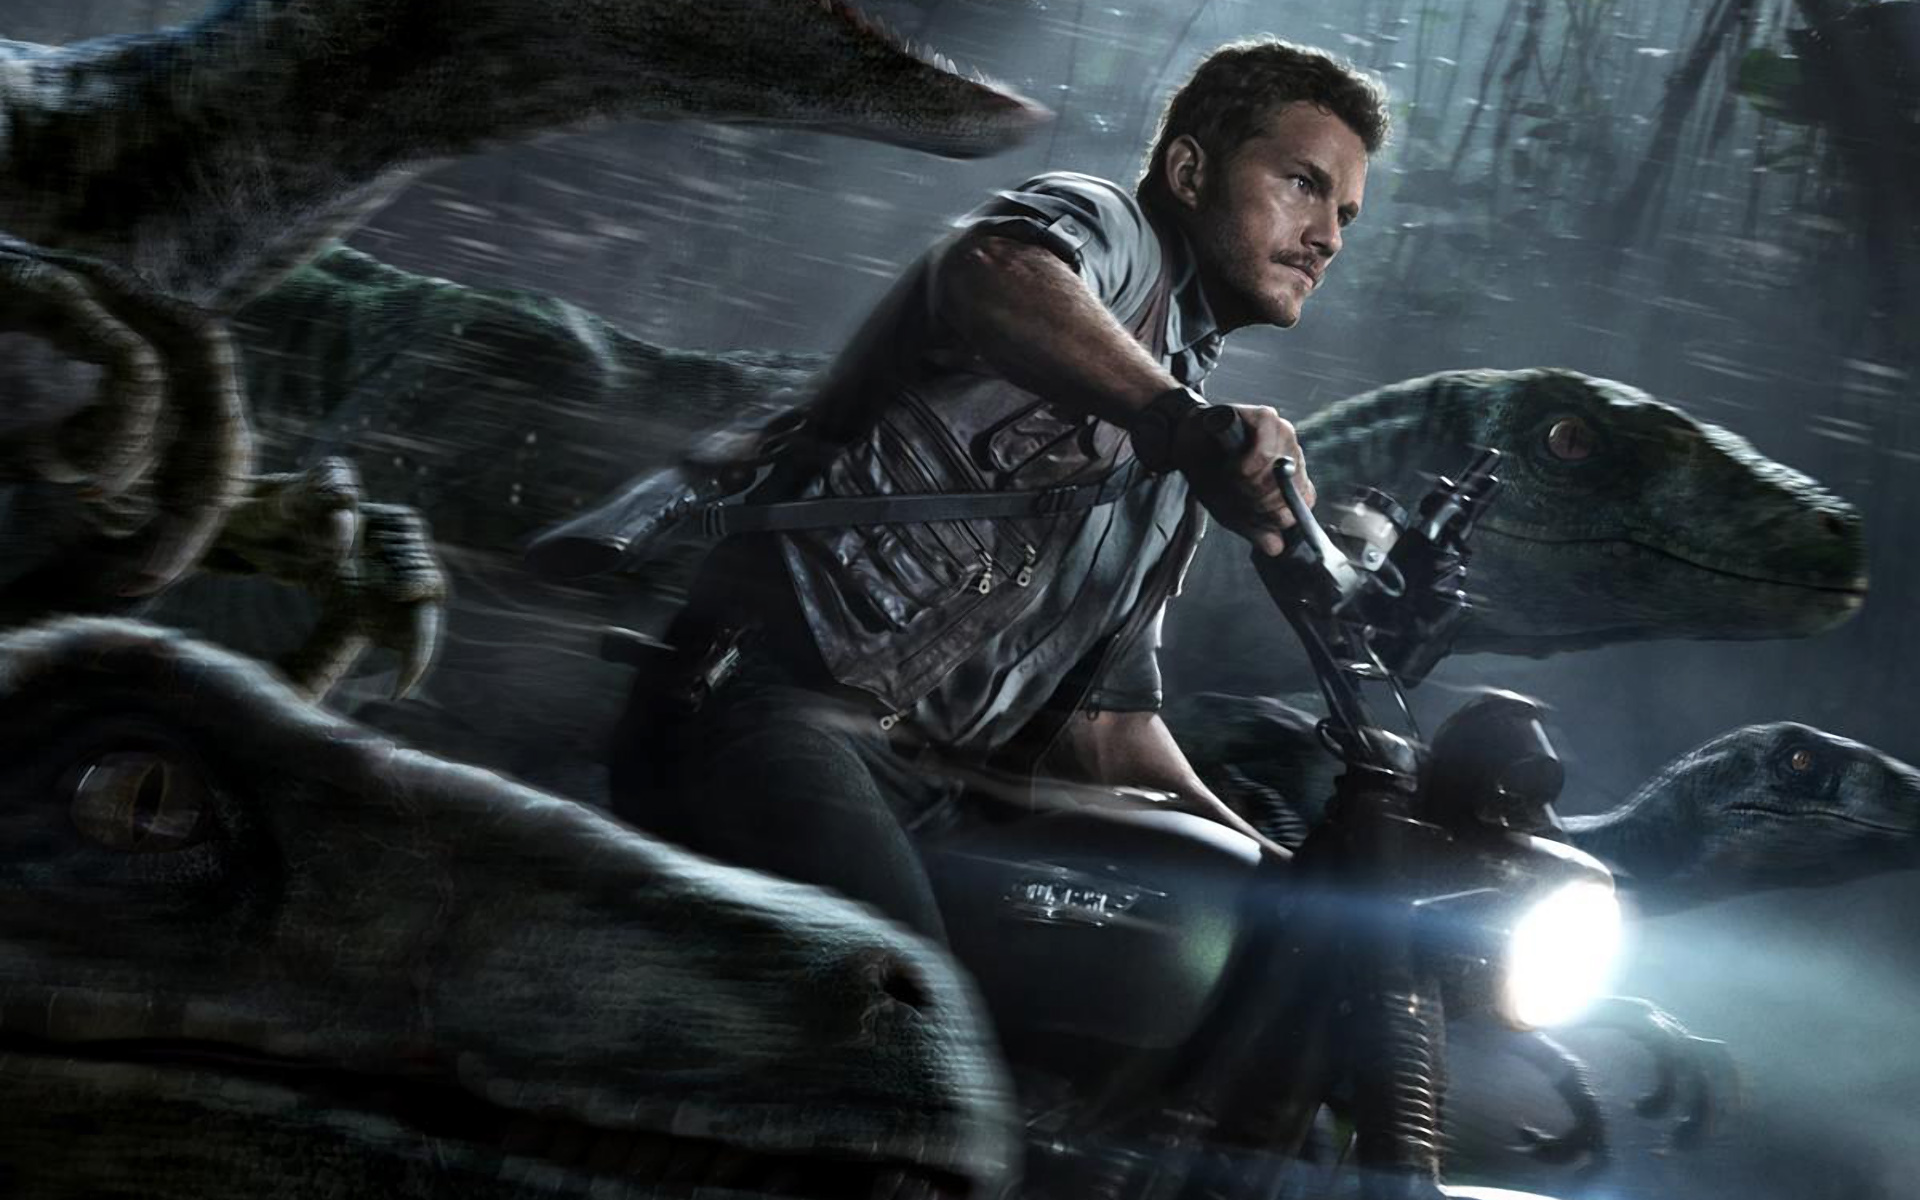 jurassic world movie wallpaper 49229